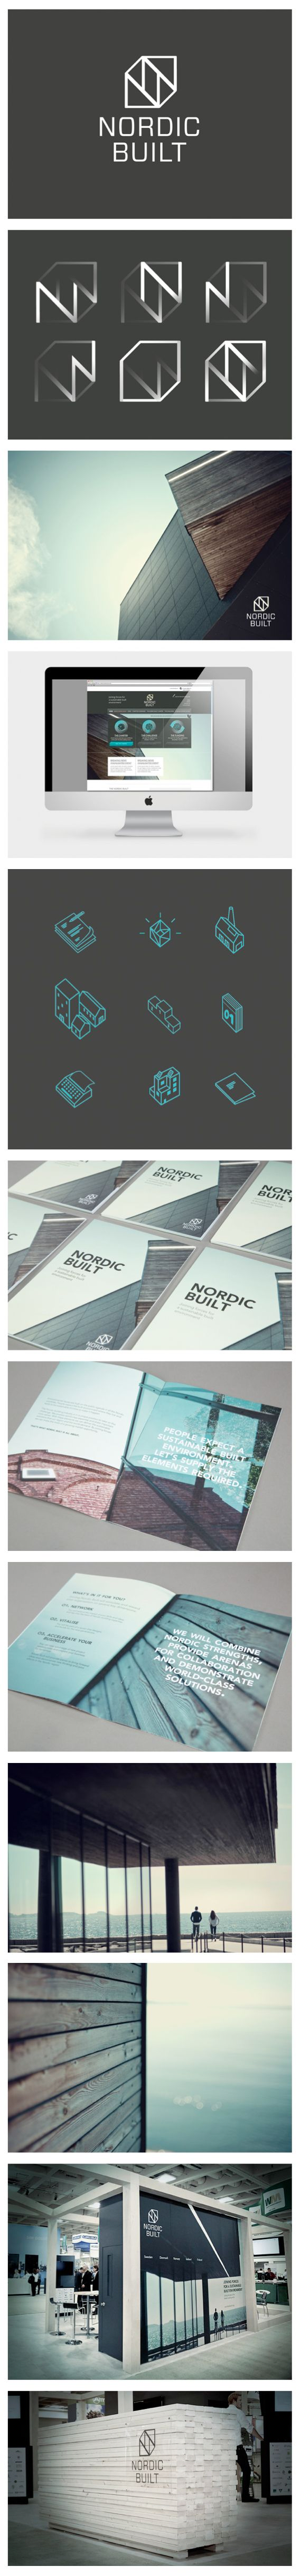 NORDIC BUILT - Branding, Exhibition Design | #stationary #corporate #design #corporatedesign #logo #identity #branding #marketing <<< repinned by an #advertising agency from #Hamburg / #Germany - www.BlickeDeeler.de